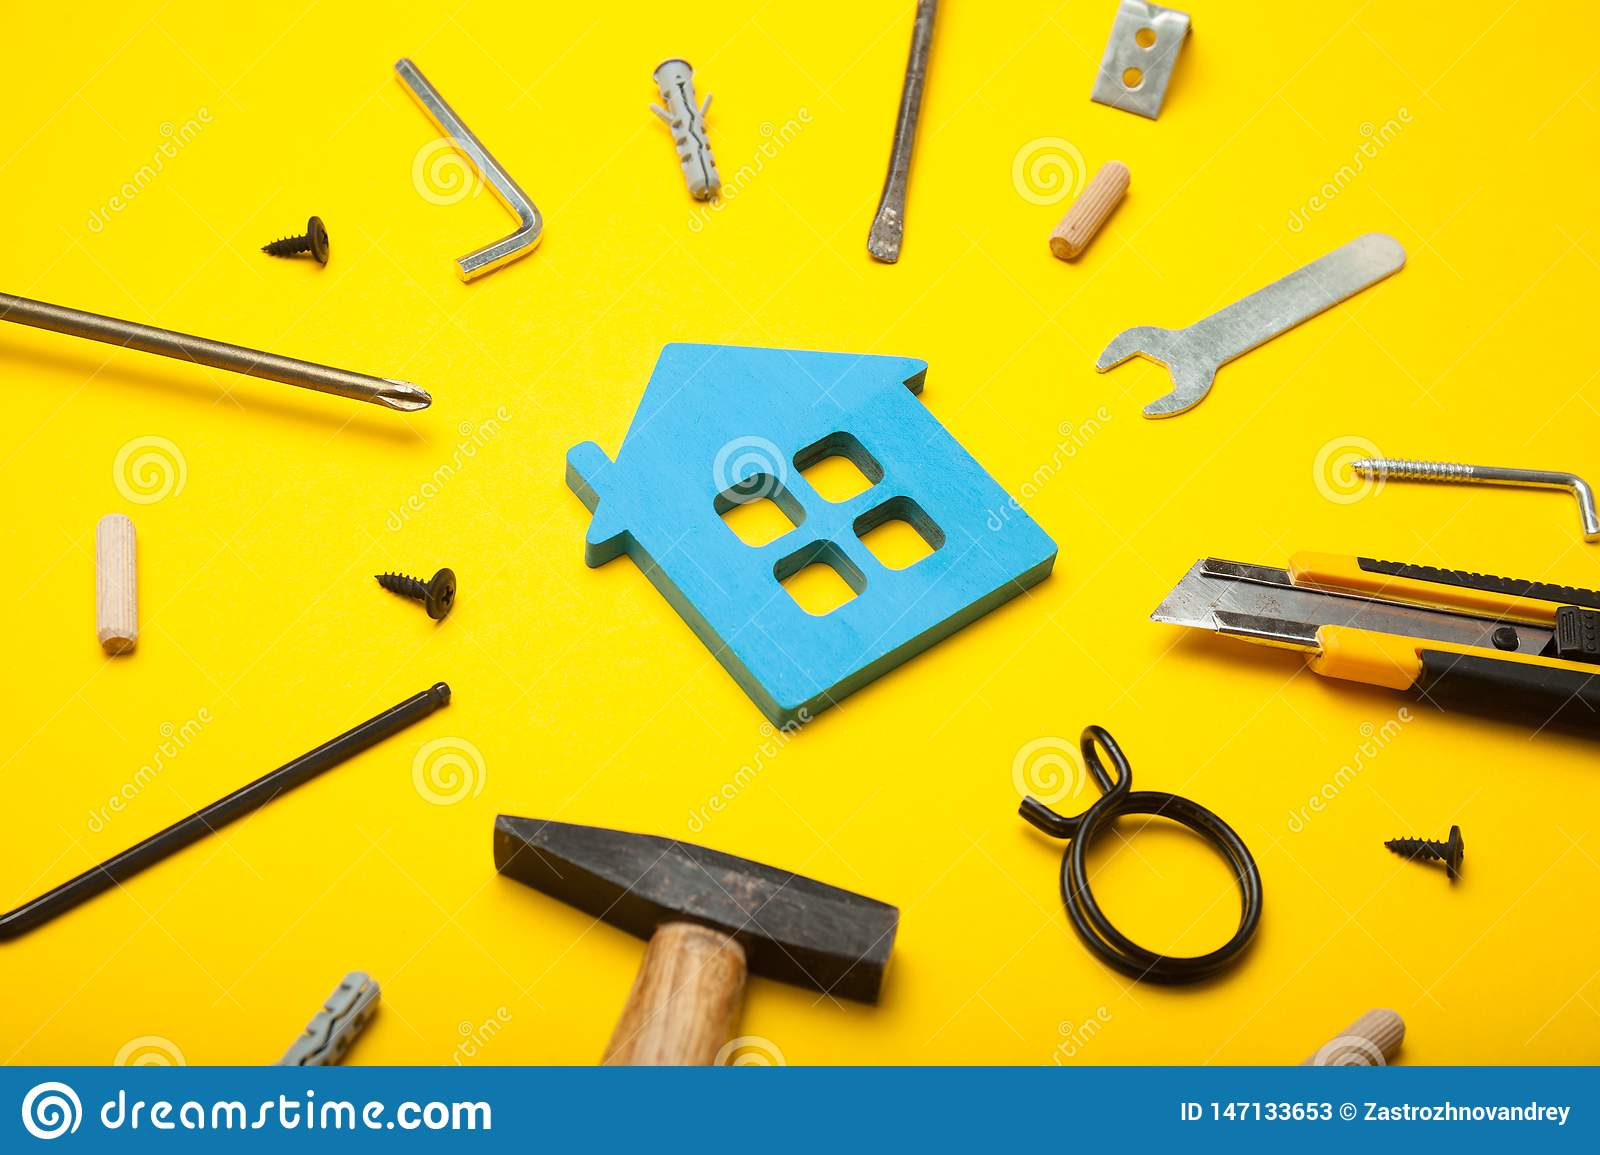 Home property repair, renovation success. Finance family household